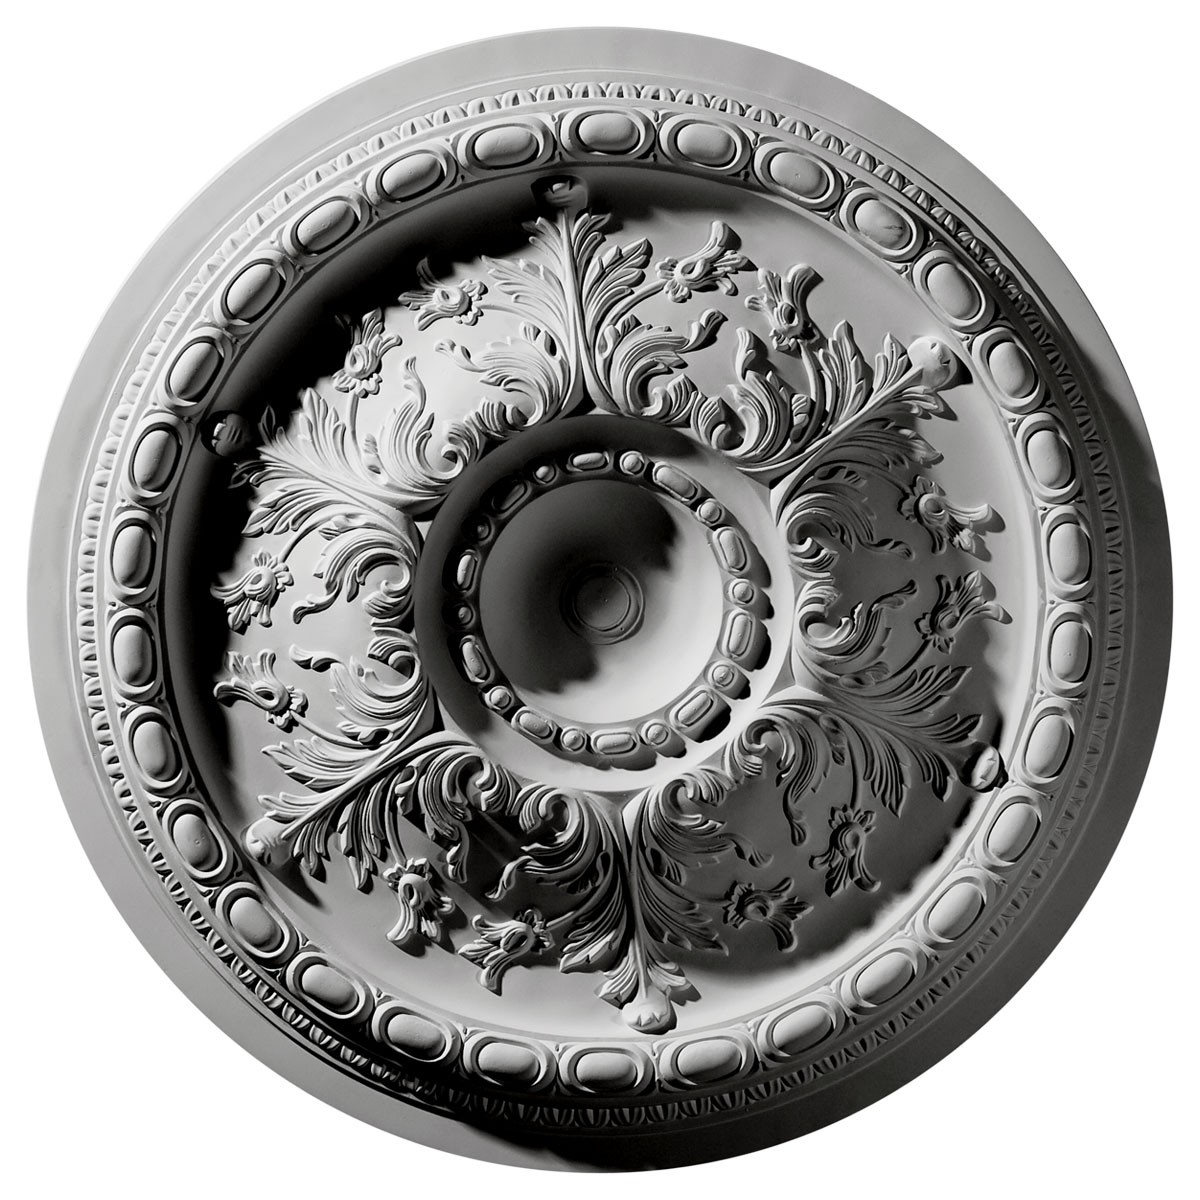 """EM-CM28ST - 28""""OD x 2 3/4""""P Stockport Ceiling Medallion (Fits Canopies up to 6 1/4"""")"""